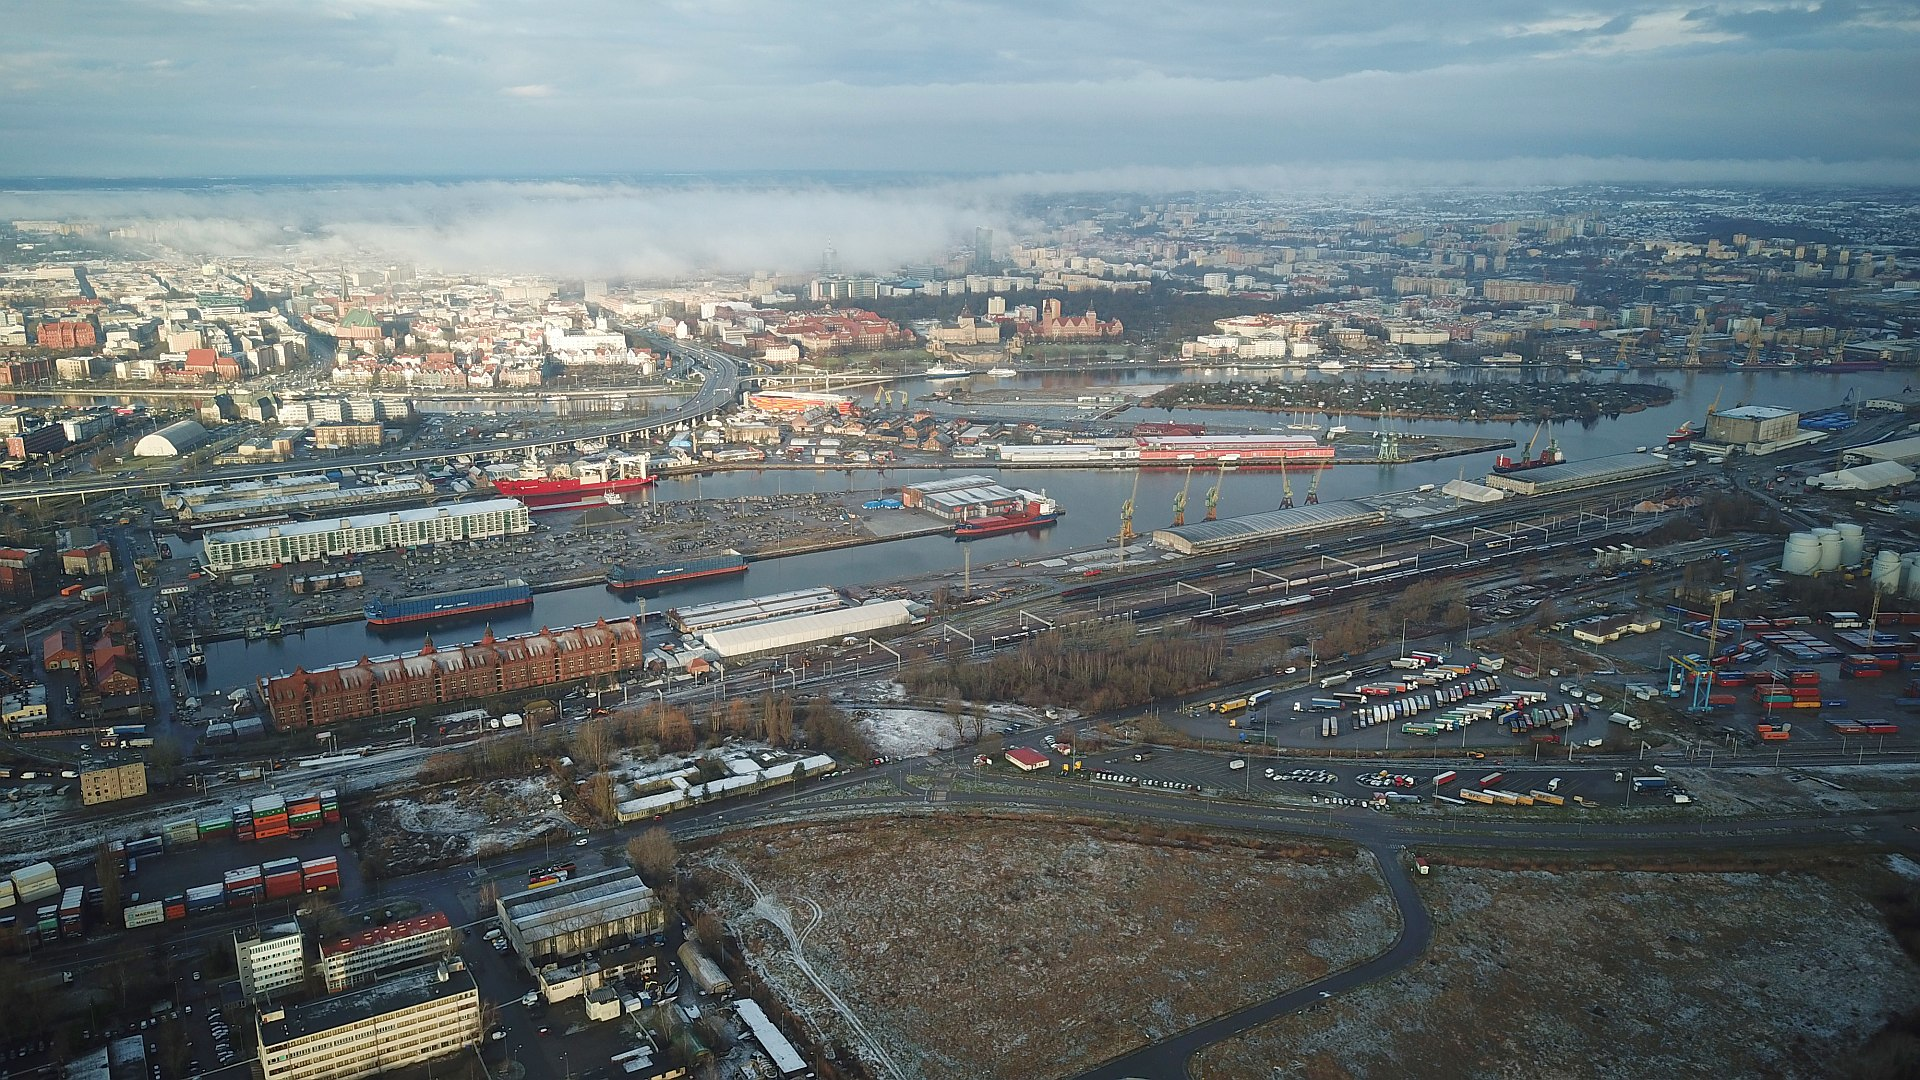 Call for interested parties to lease area at Szczecin port